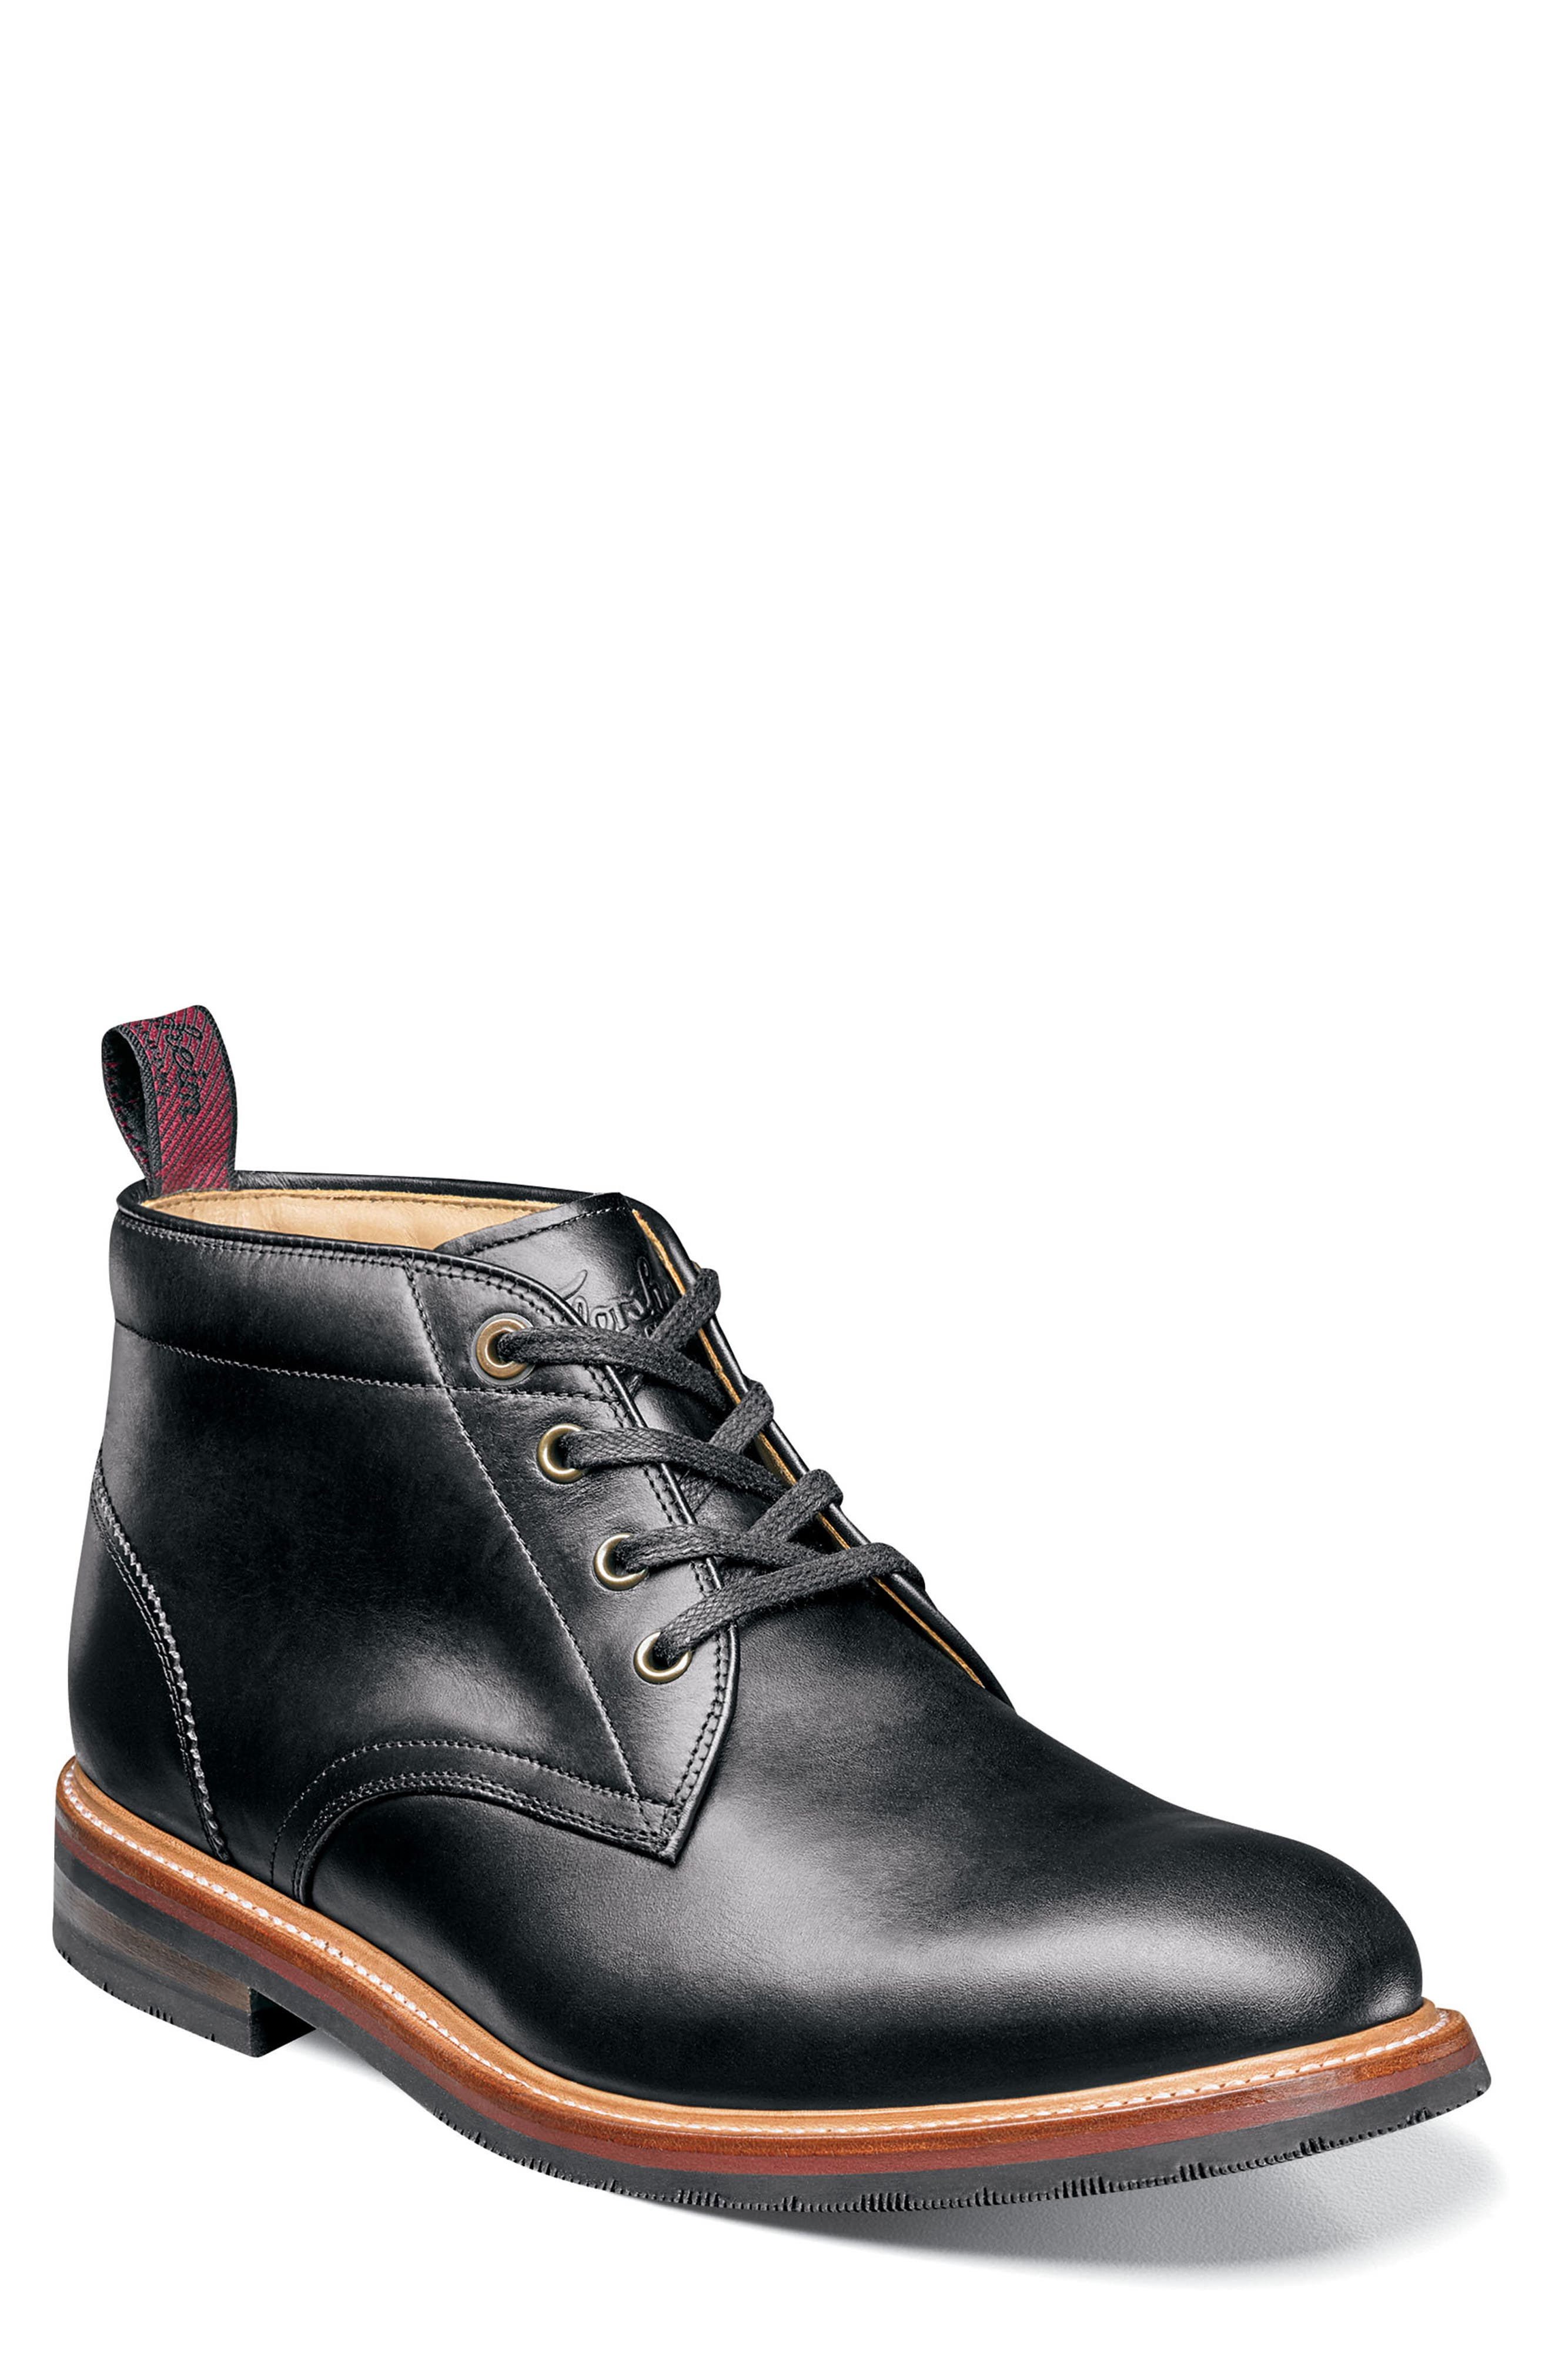 FLORSHEIM Foundry Leather Boot in Black Leather